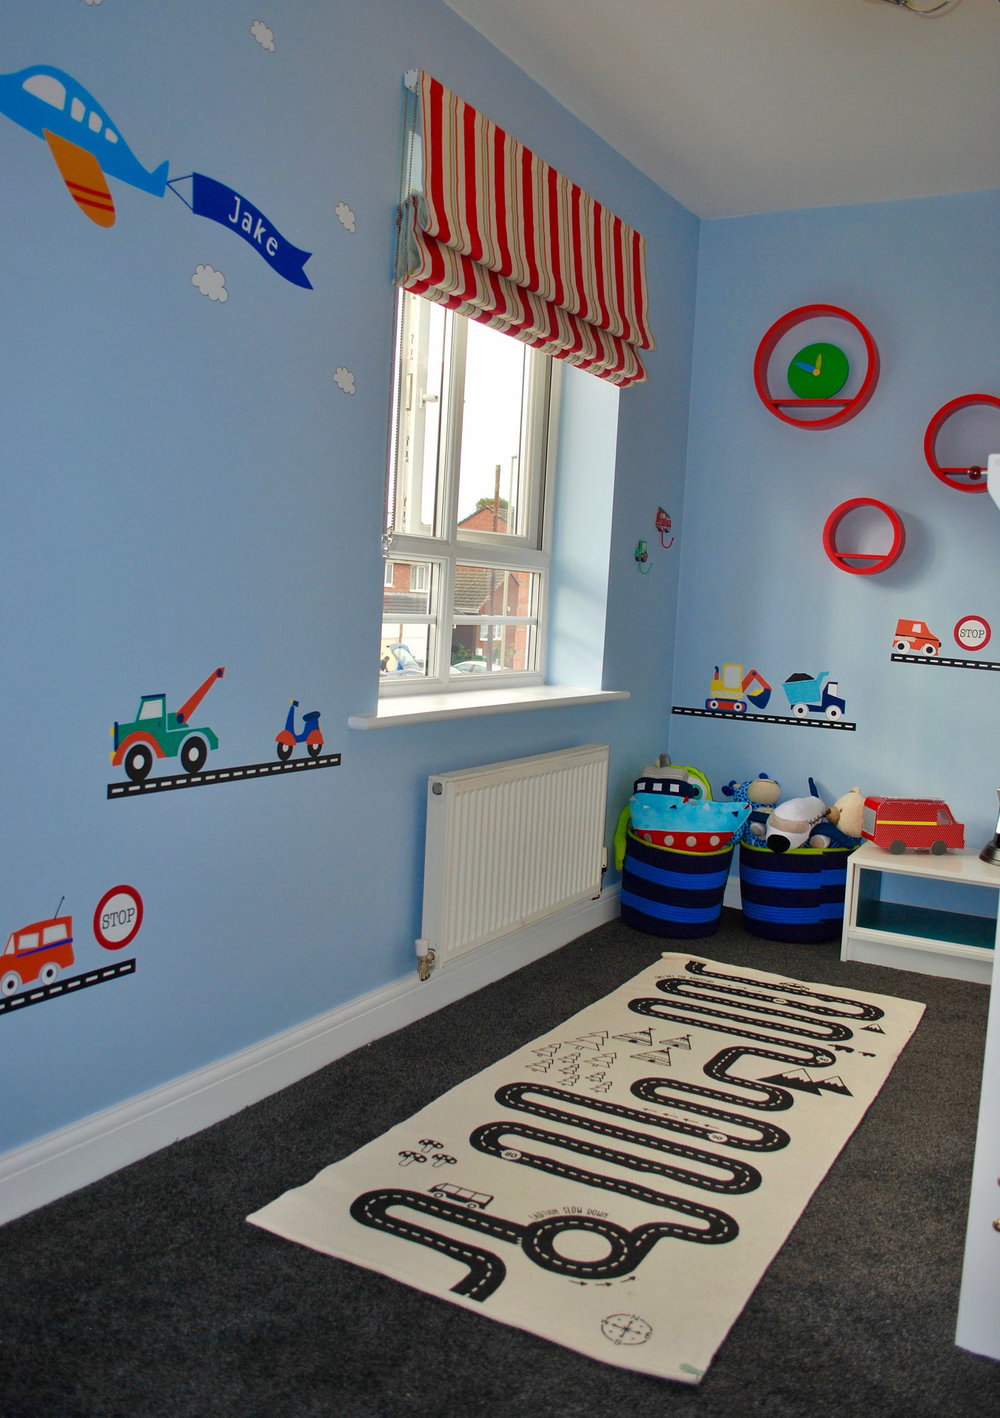 Transport theme bedroom makeover for little boys room kinderoo childrens interiors make a wish uk 3